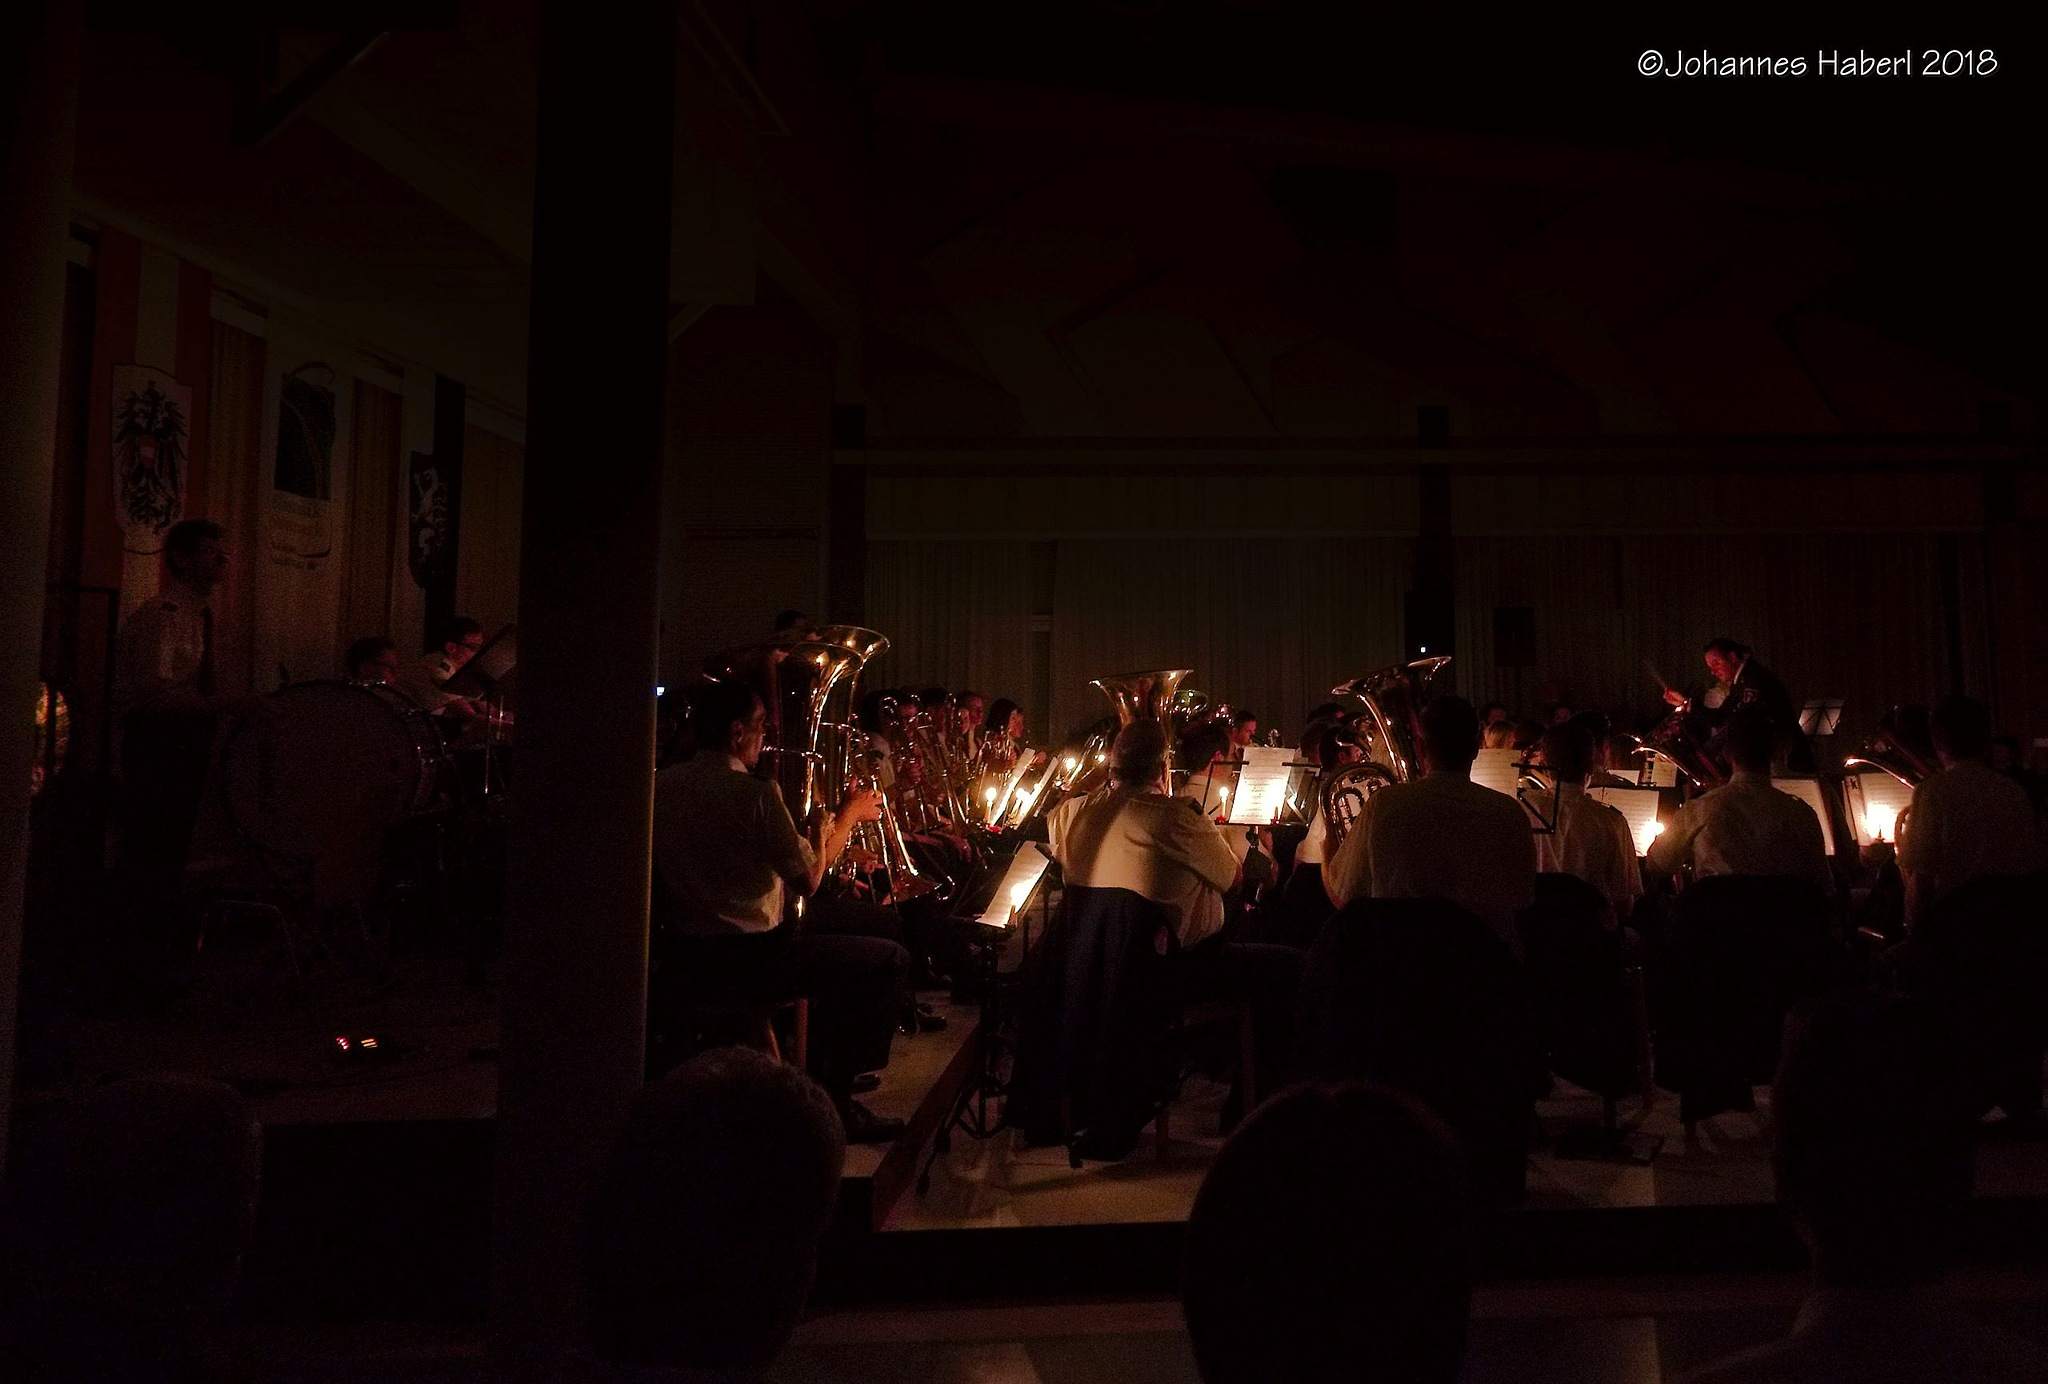 spring concert - with candle-light III by Johannes Haberl